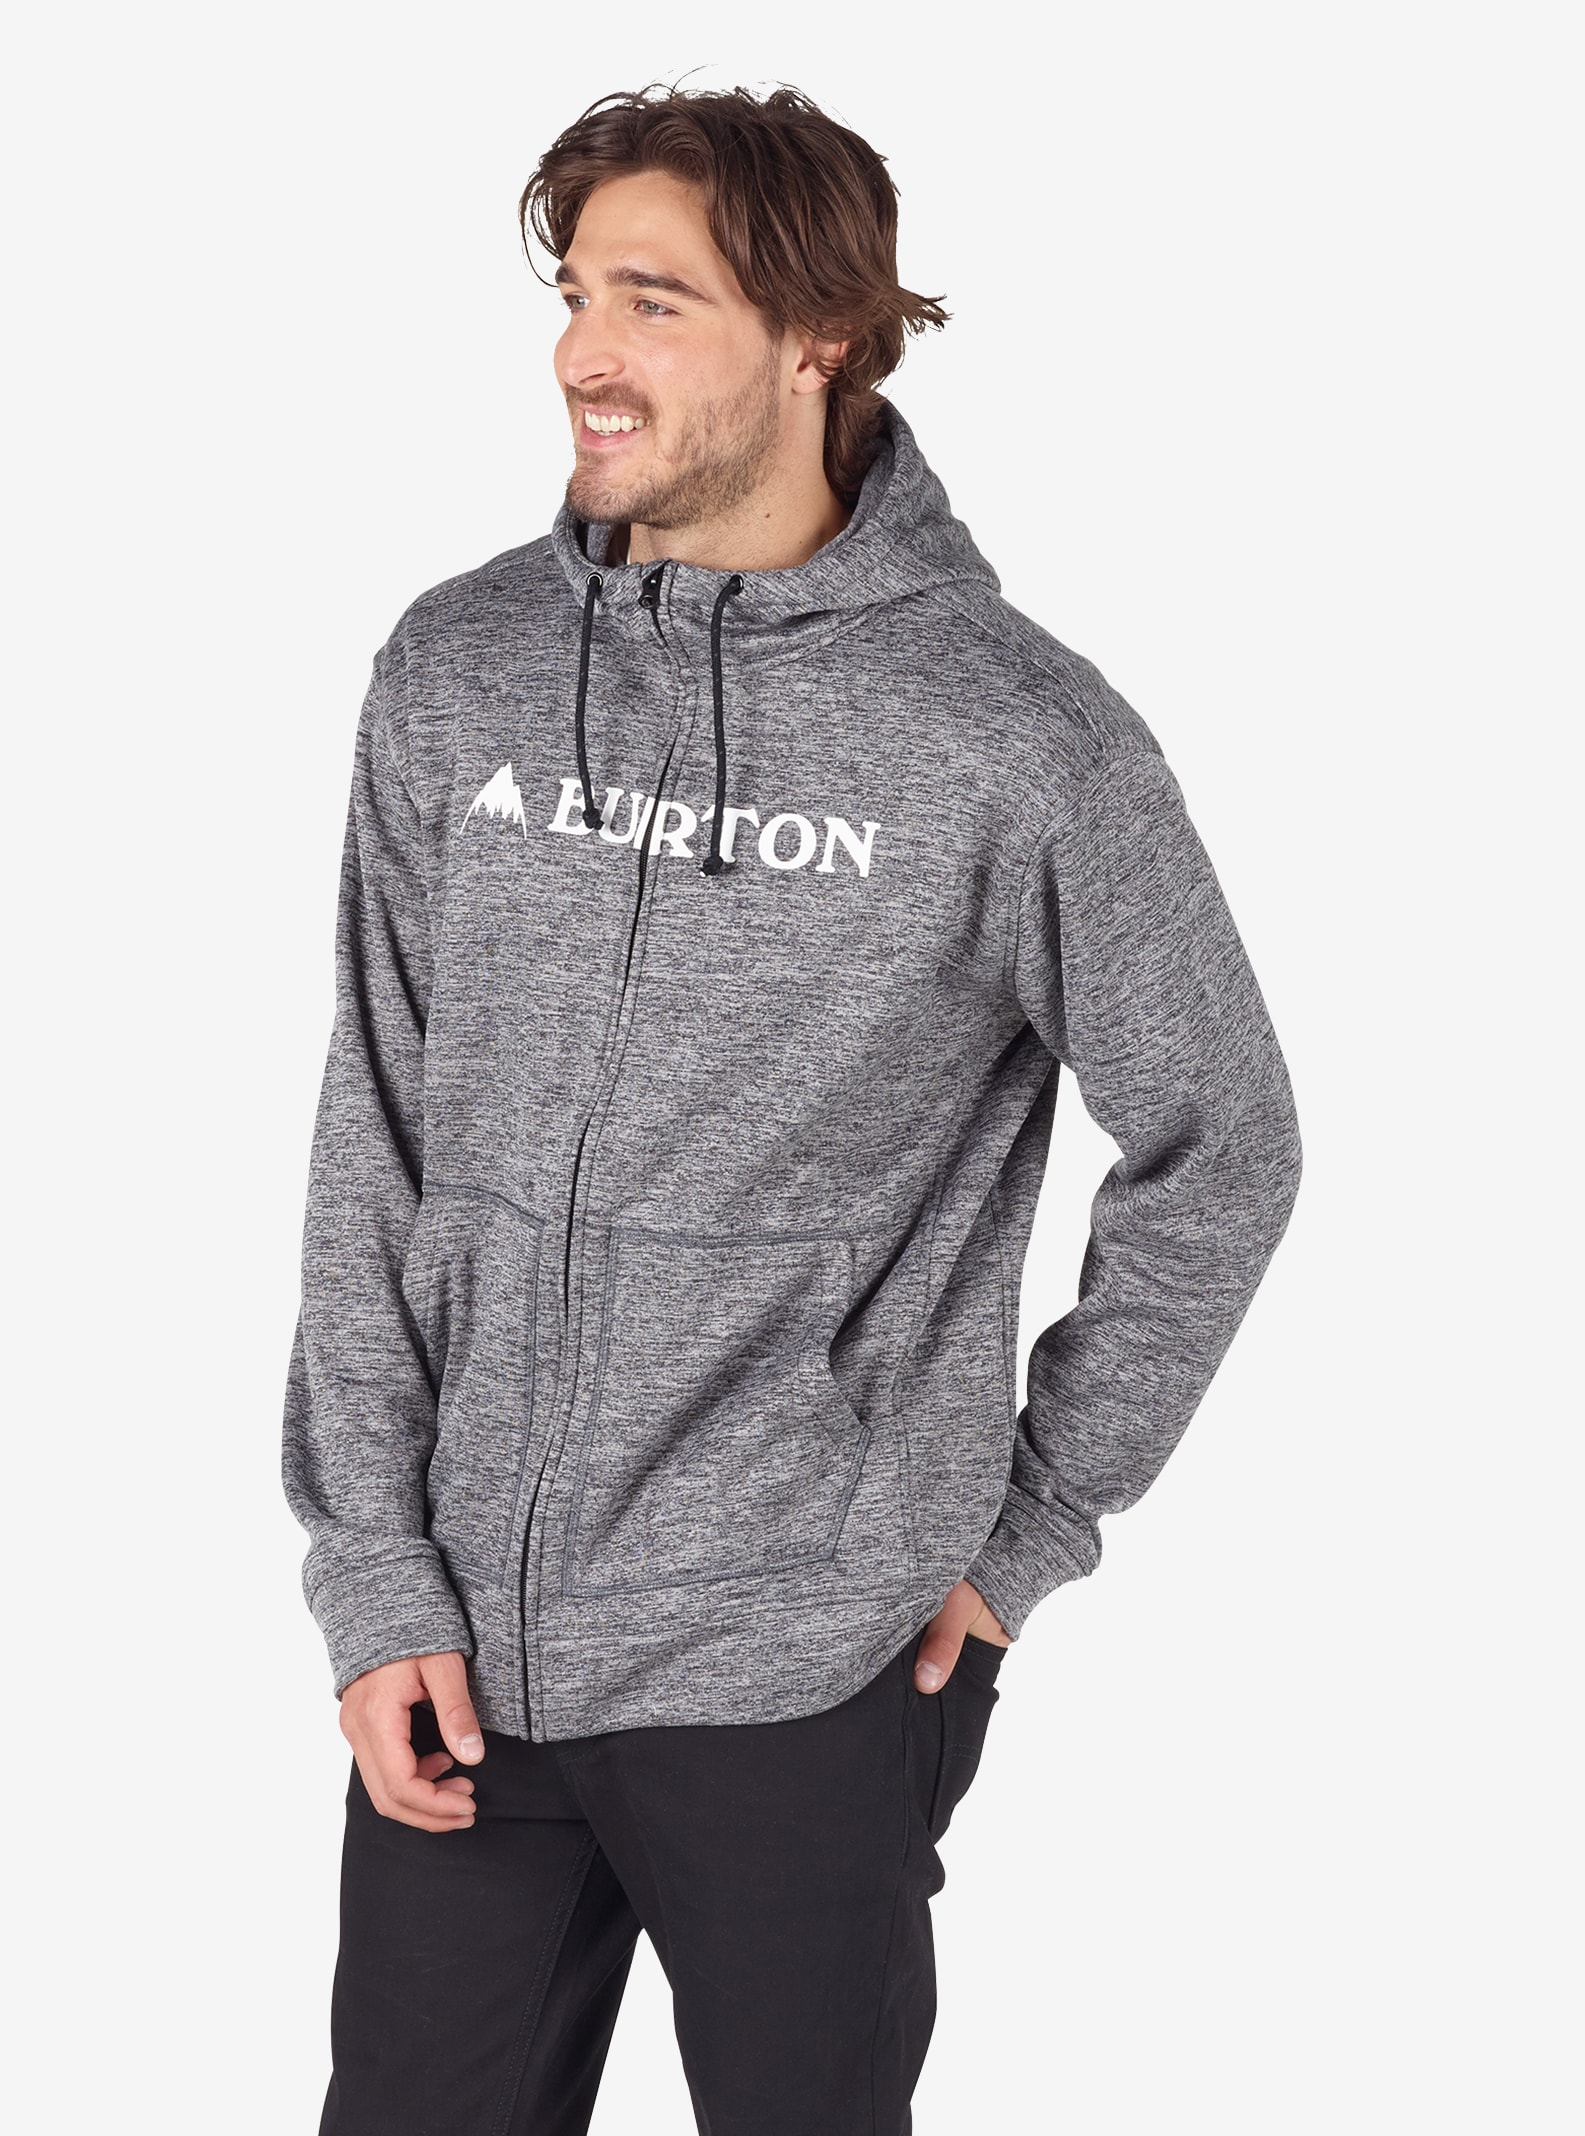 Men's Burton Oak Full-Zip Hoodie shown in True Black Heather